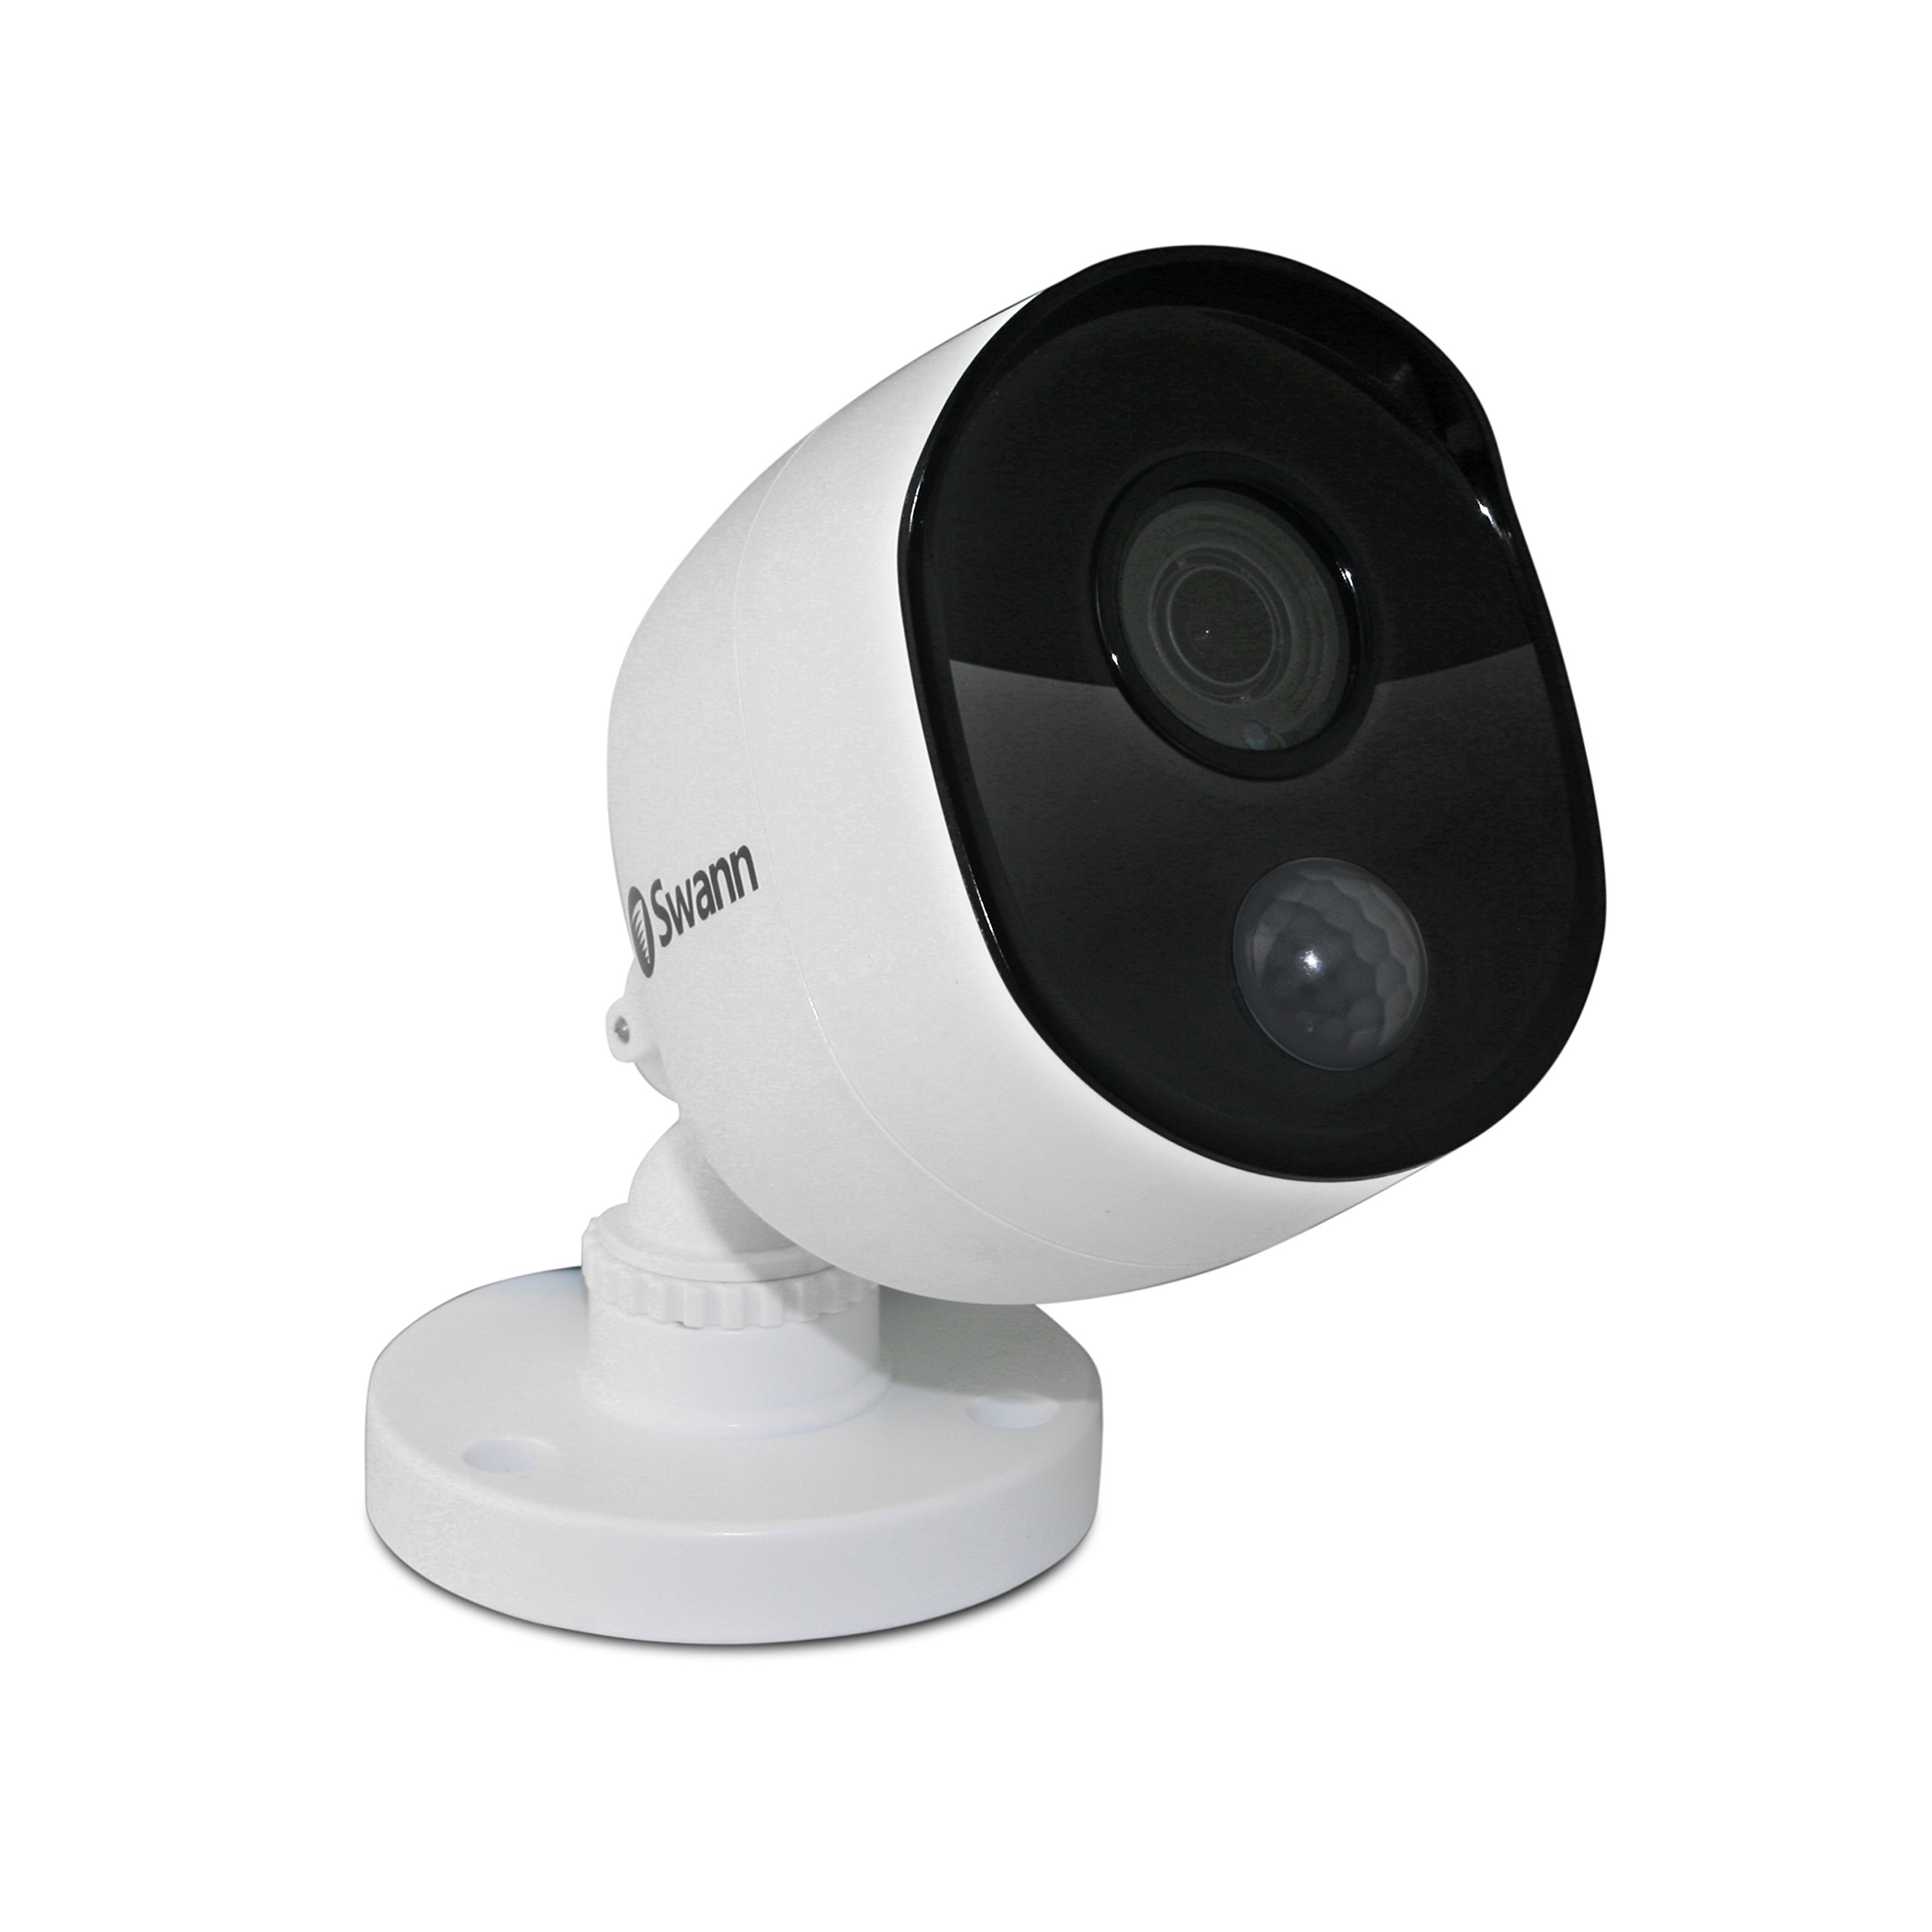 Swann Wired PIR Bullet Security Camera, 1080p Full HD Surveillance Cam with Infrared Night Vision, Indoor/Outdoor, Thermal, Heat & Motion Sensing, Add to DVR, SWPRO-1080MSB by Swann